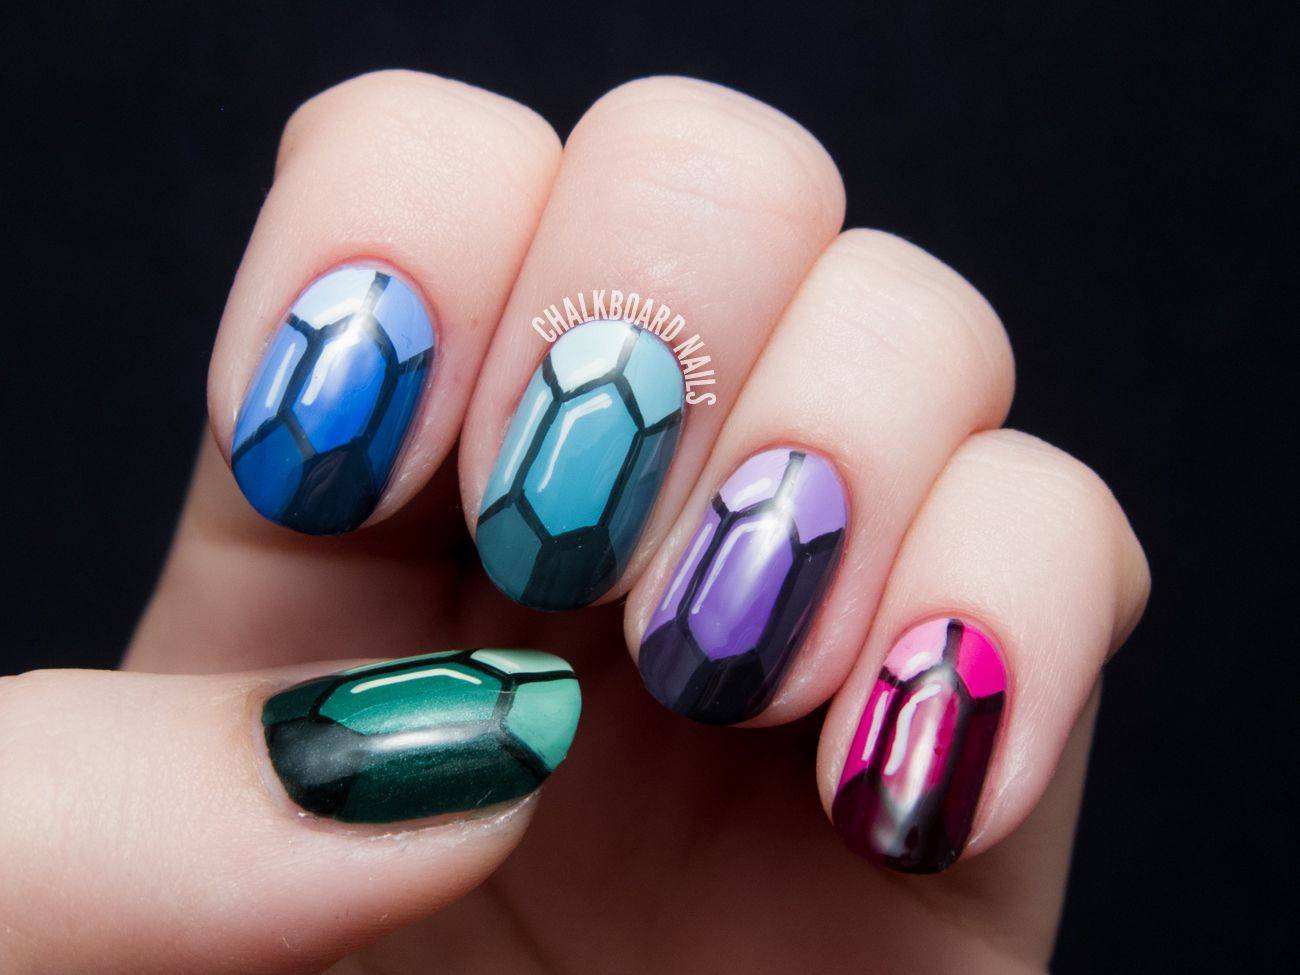 Nail Art Ideas shamrock nail art tutorial : Chalkboard Nails - Gemstones tutorial | Nail Art | Pinterest | Gem ...